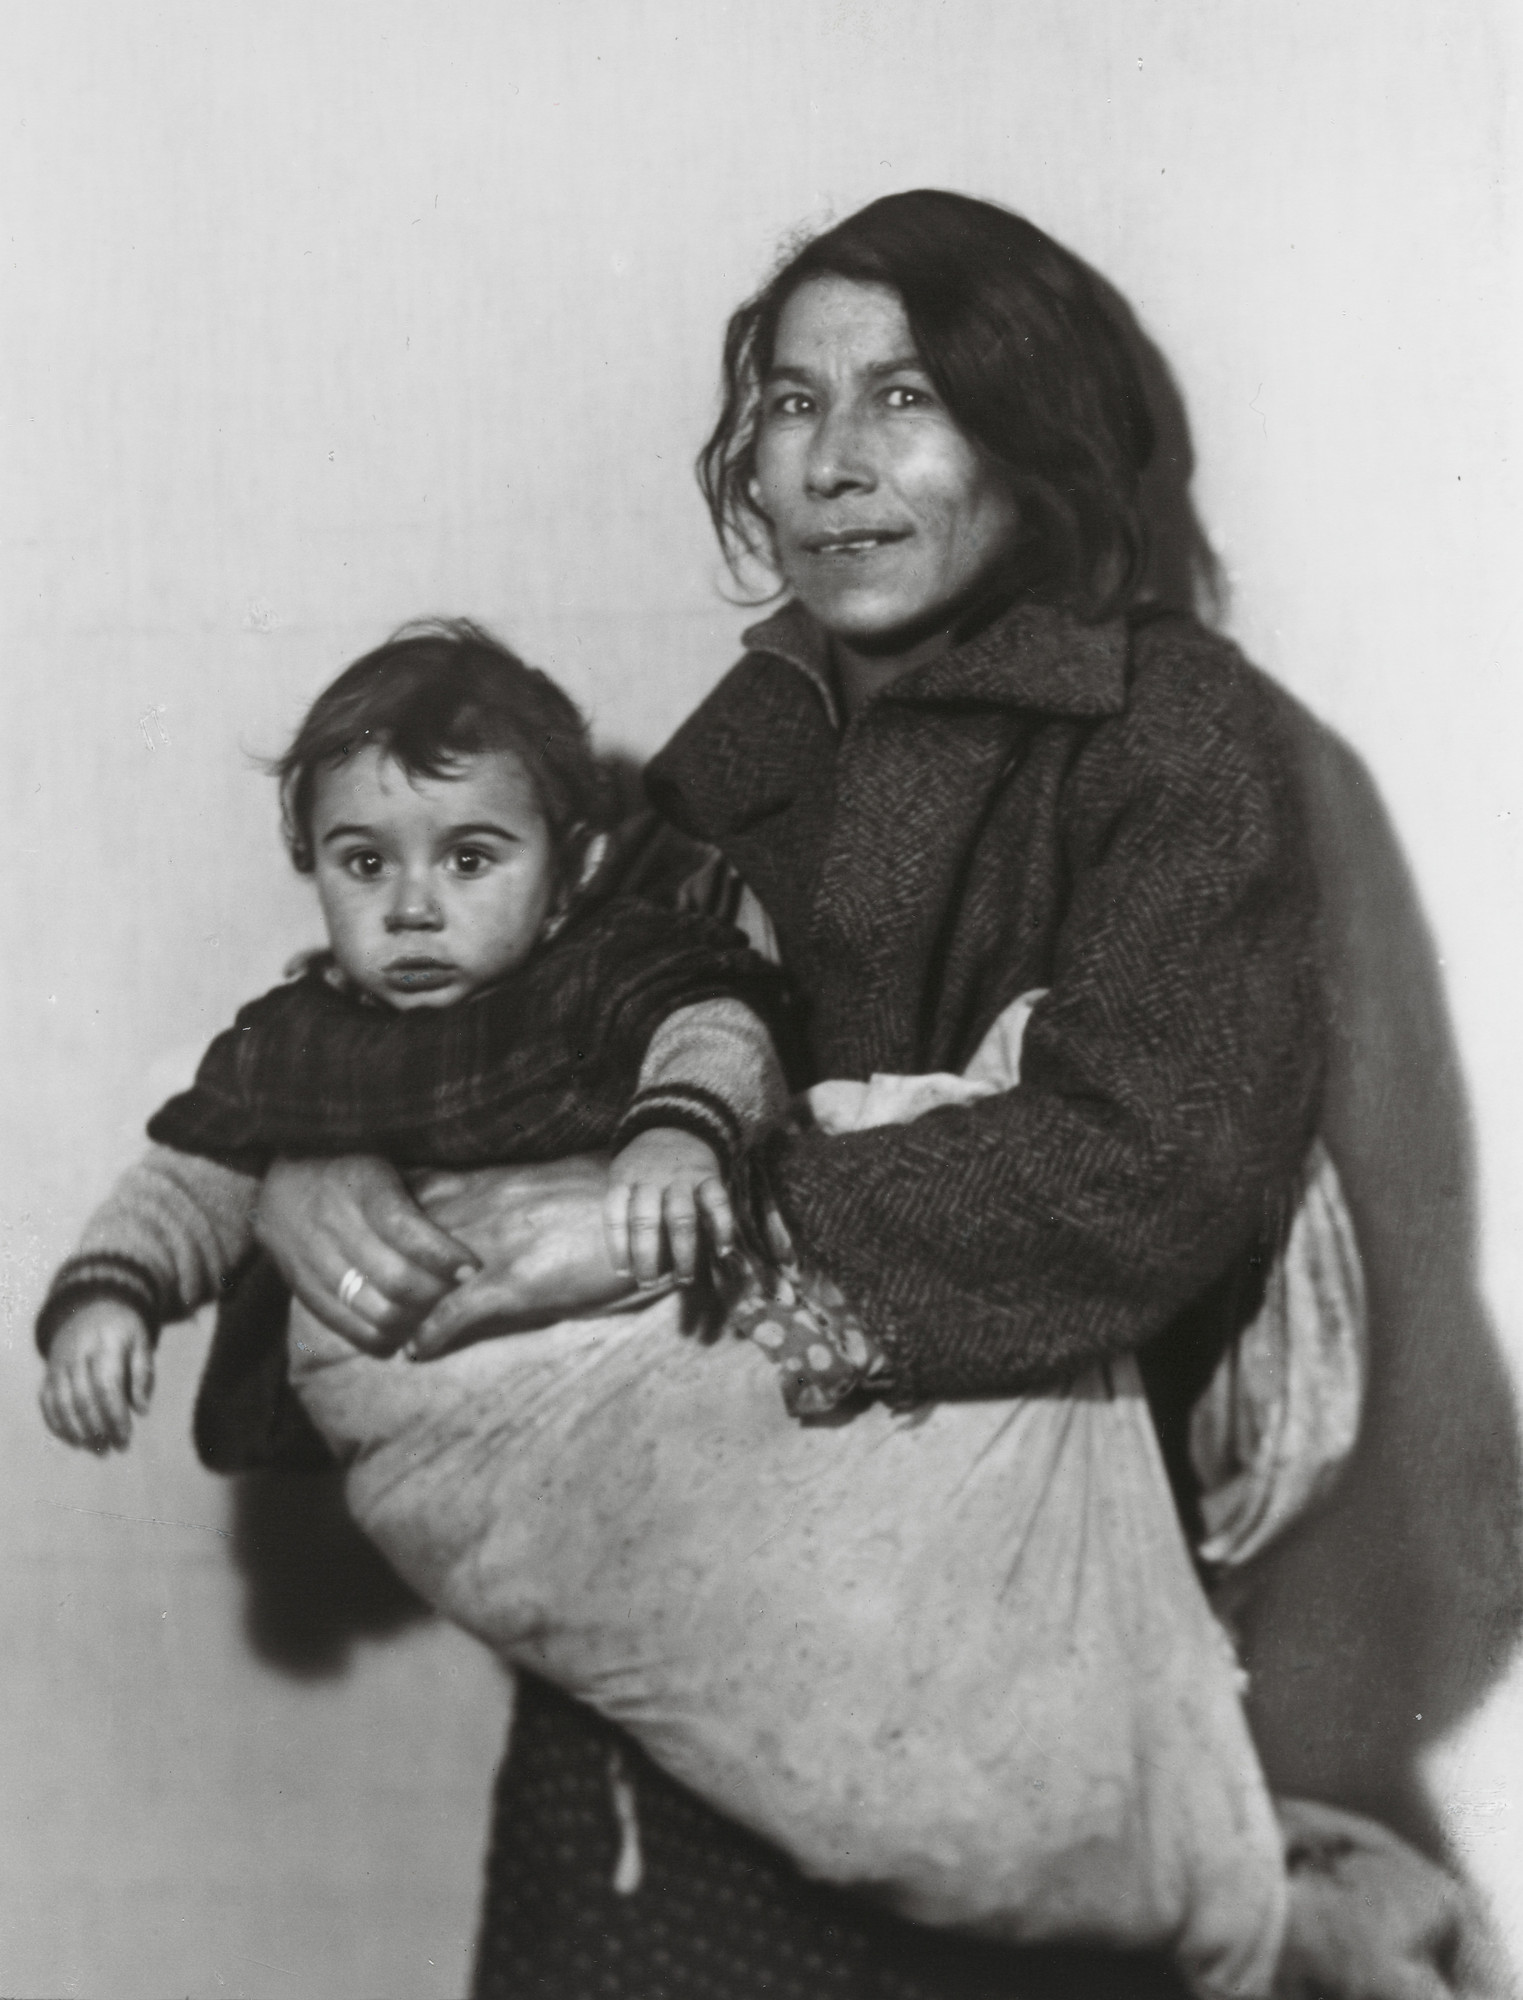 August Sander. Gypsy Woman and Child. c. 1930